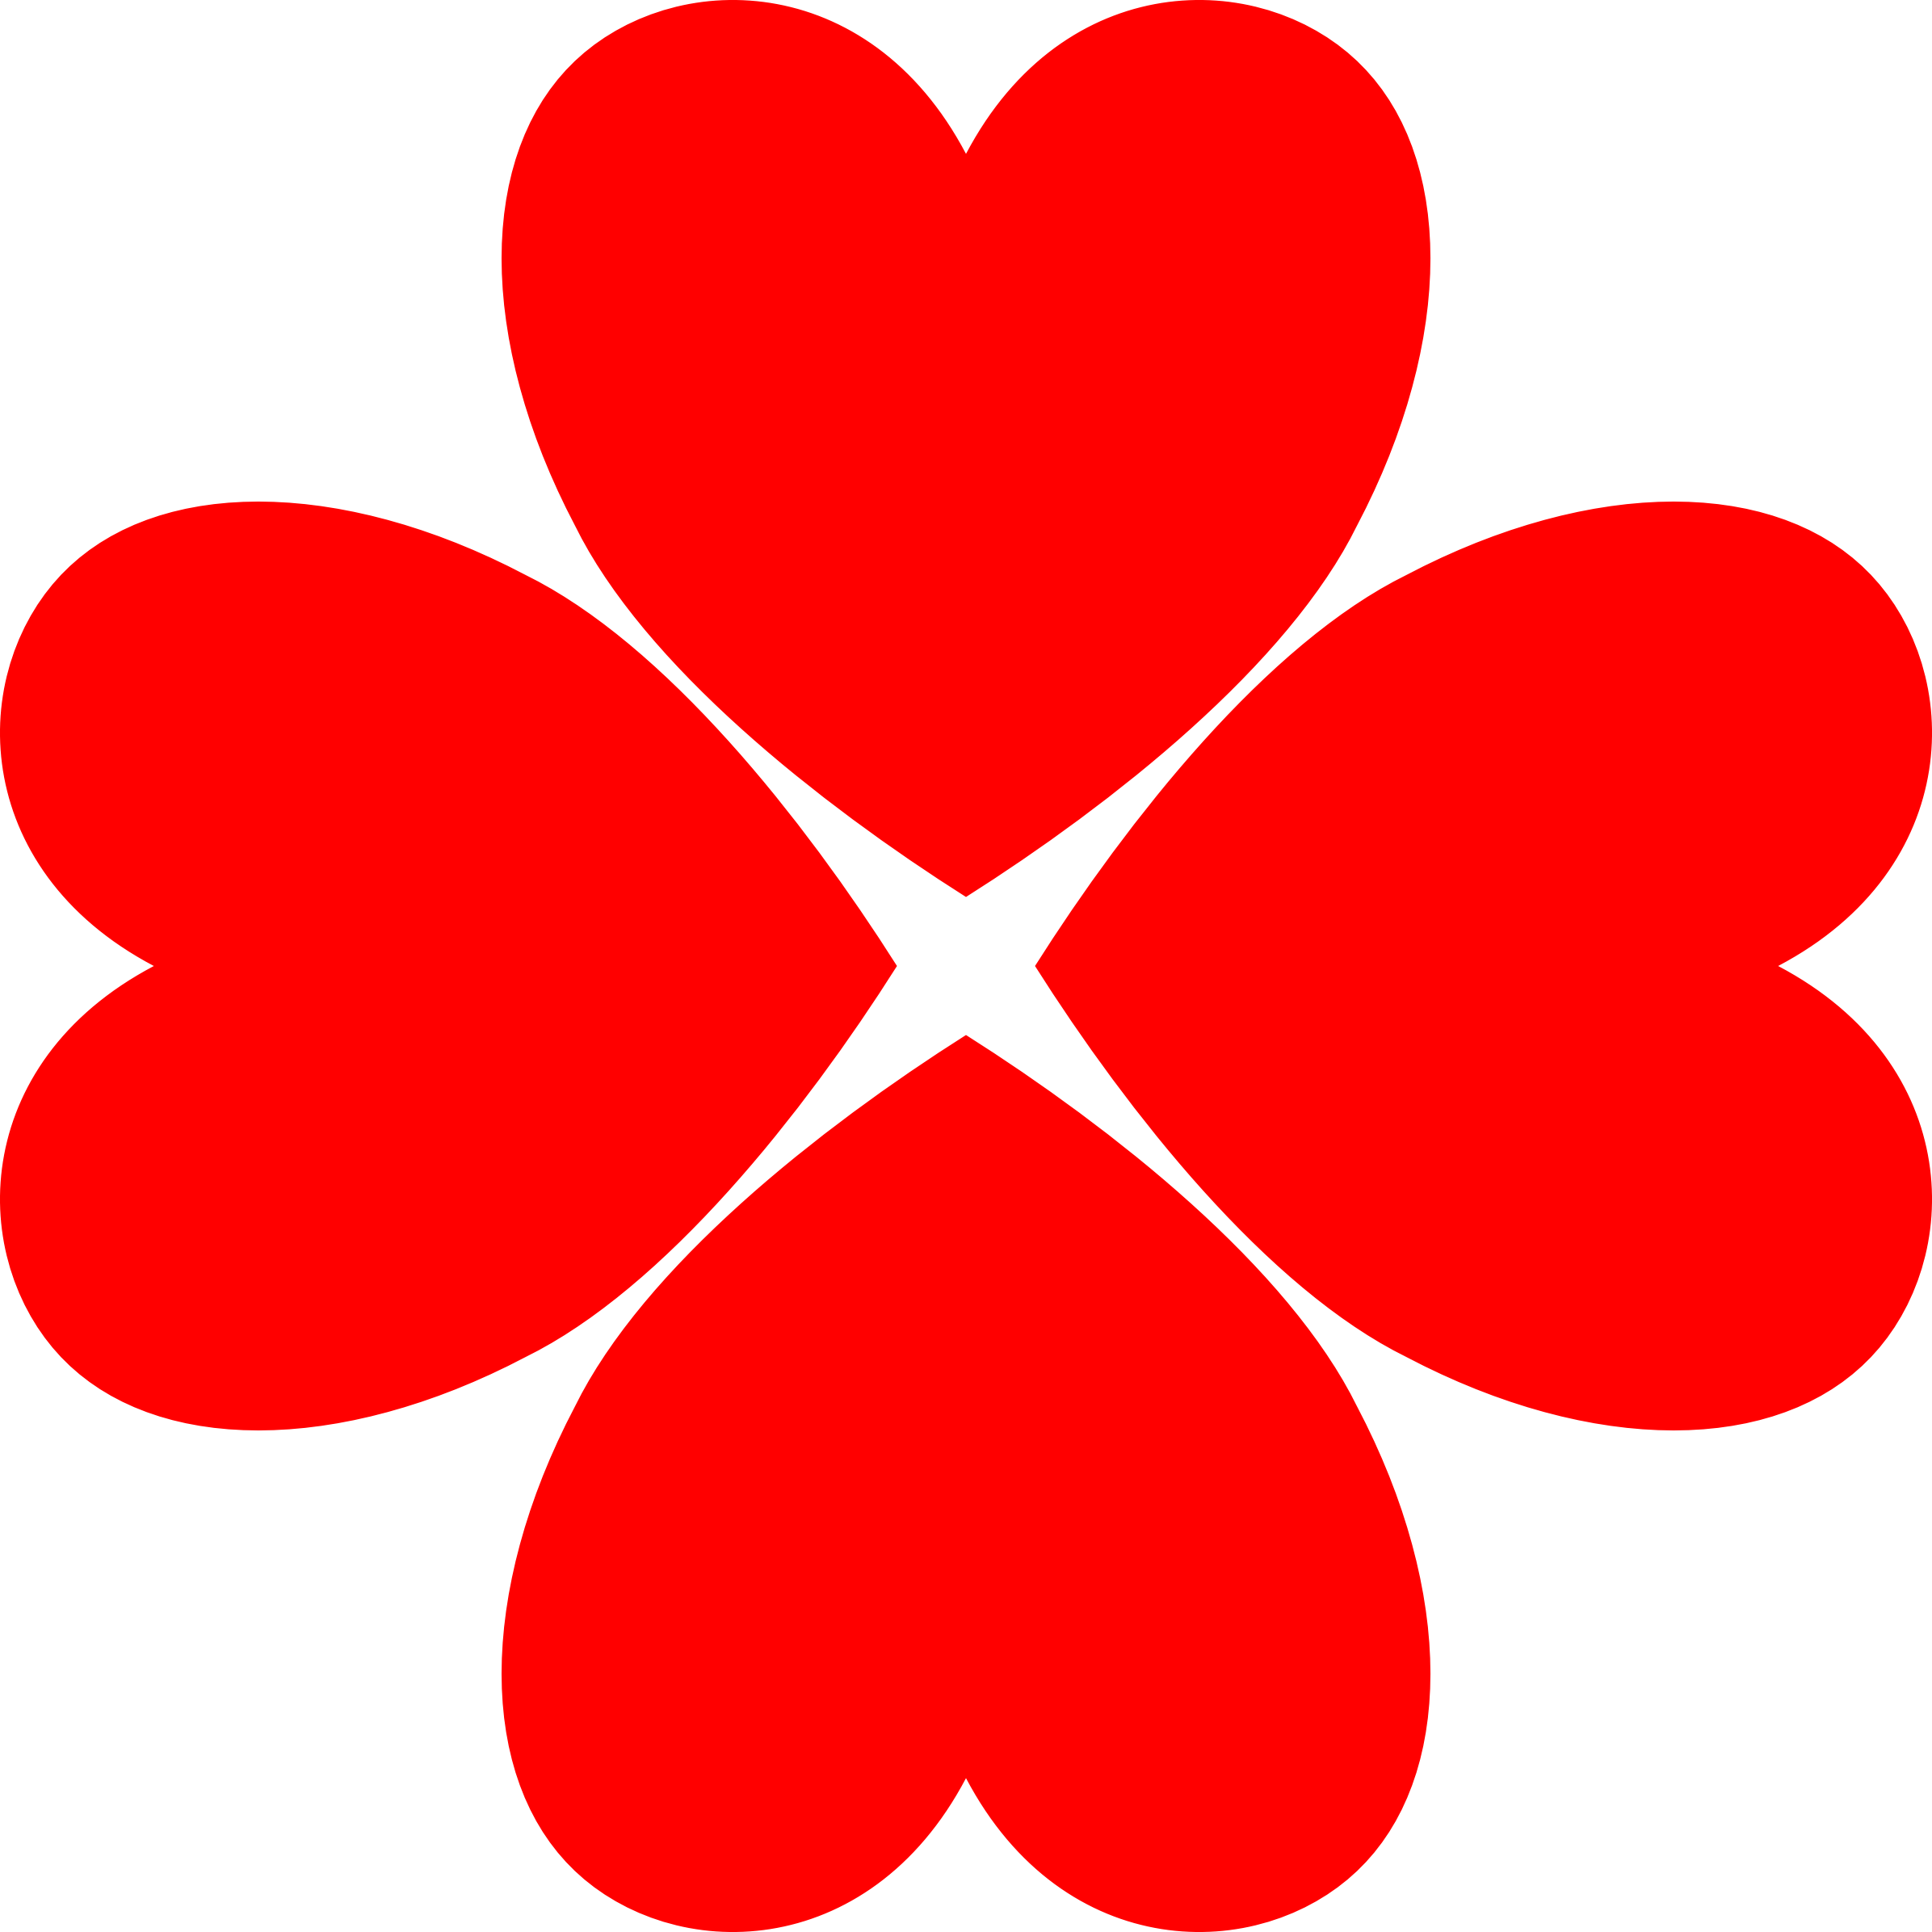 clip art download Four icons png free. Clover clipart heart clover.